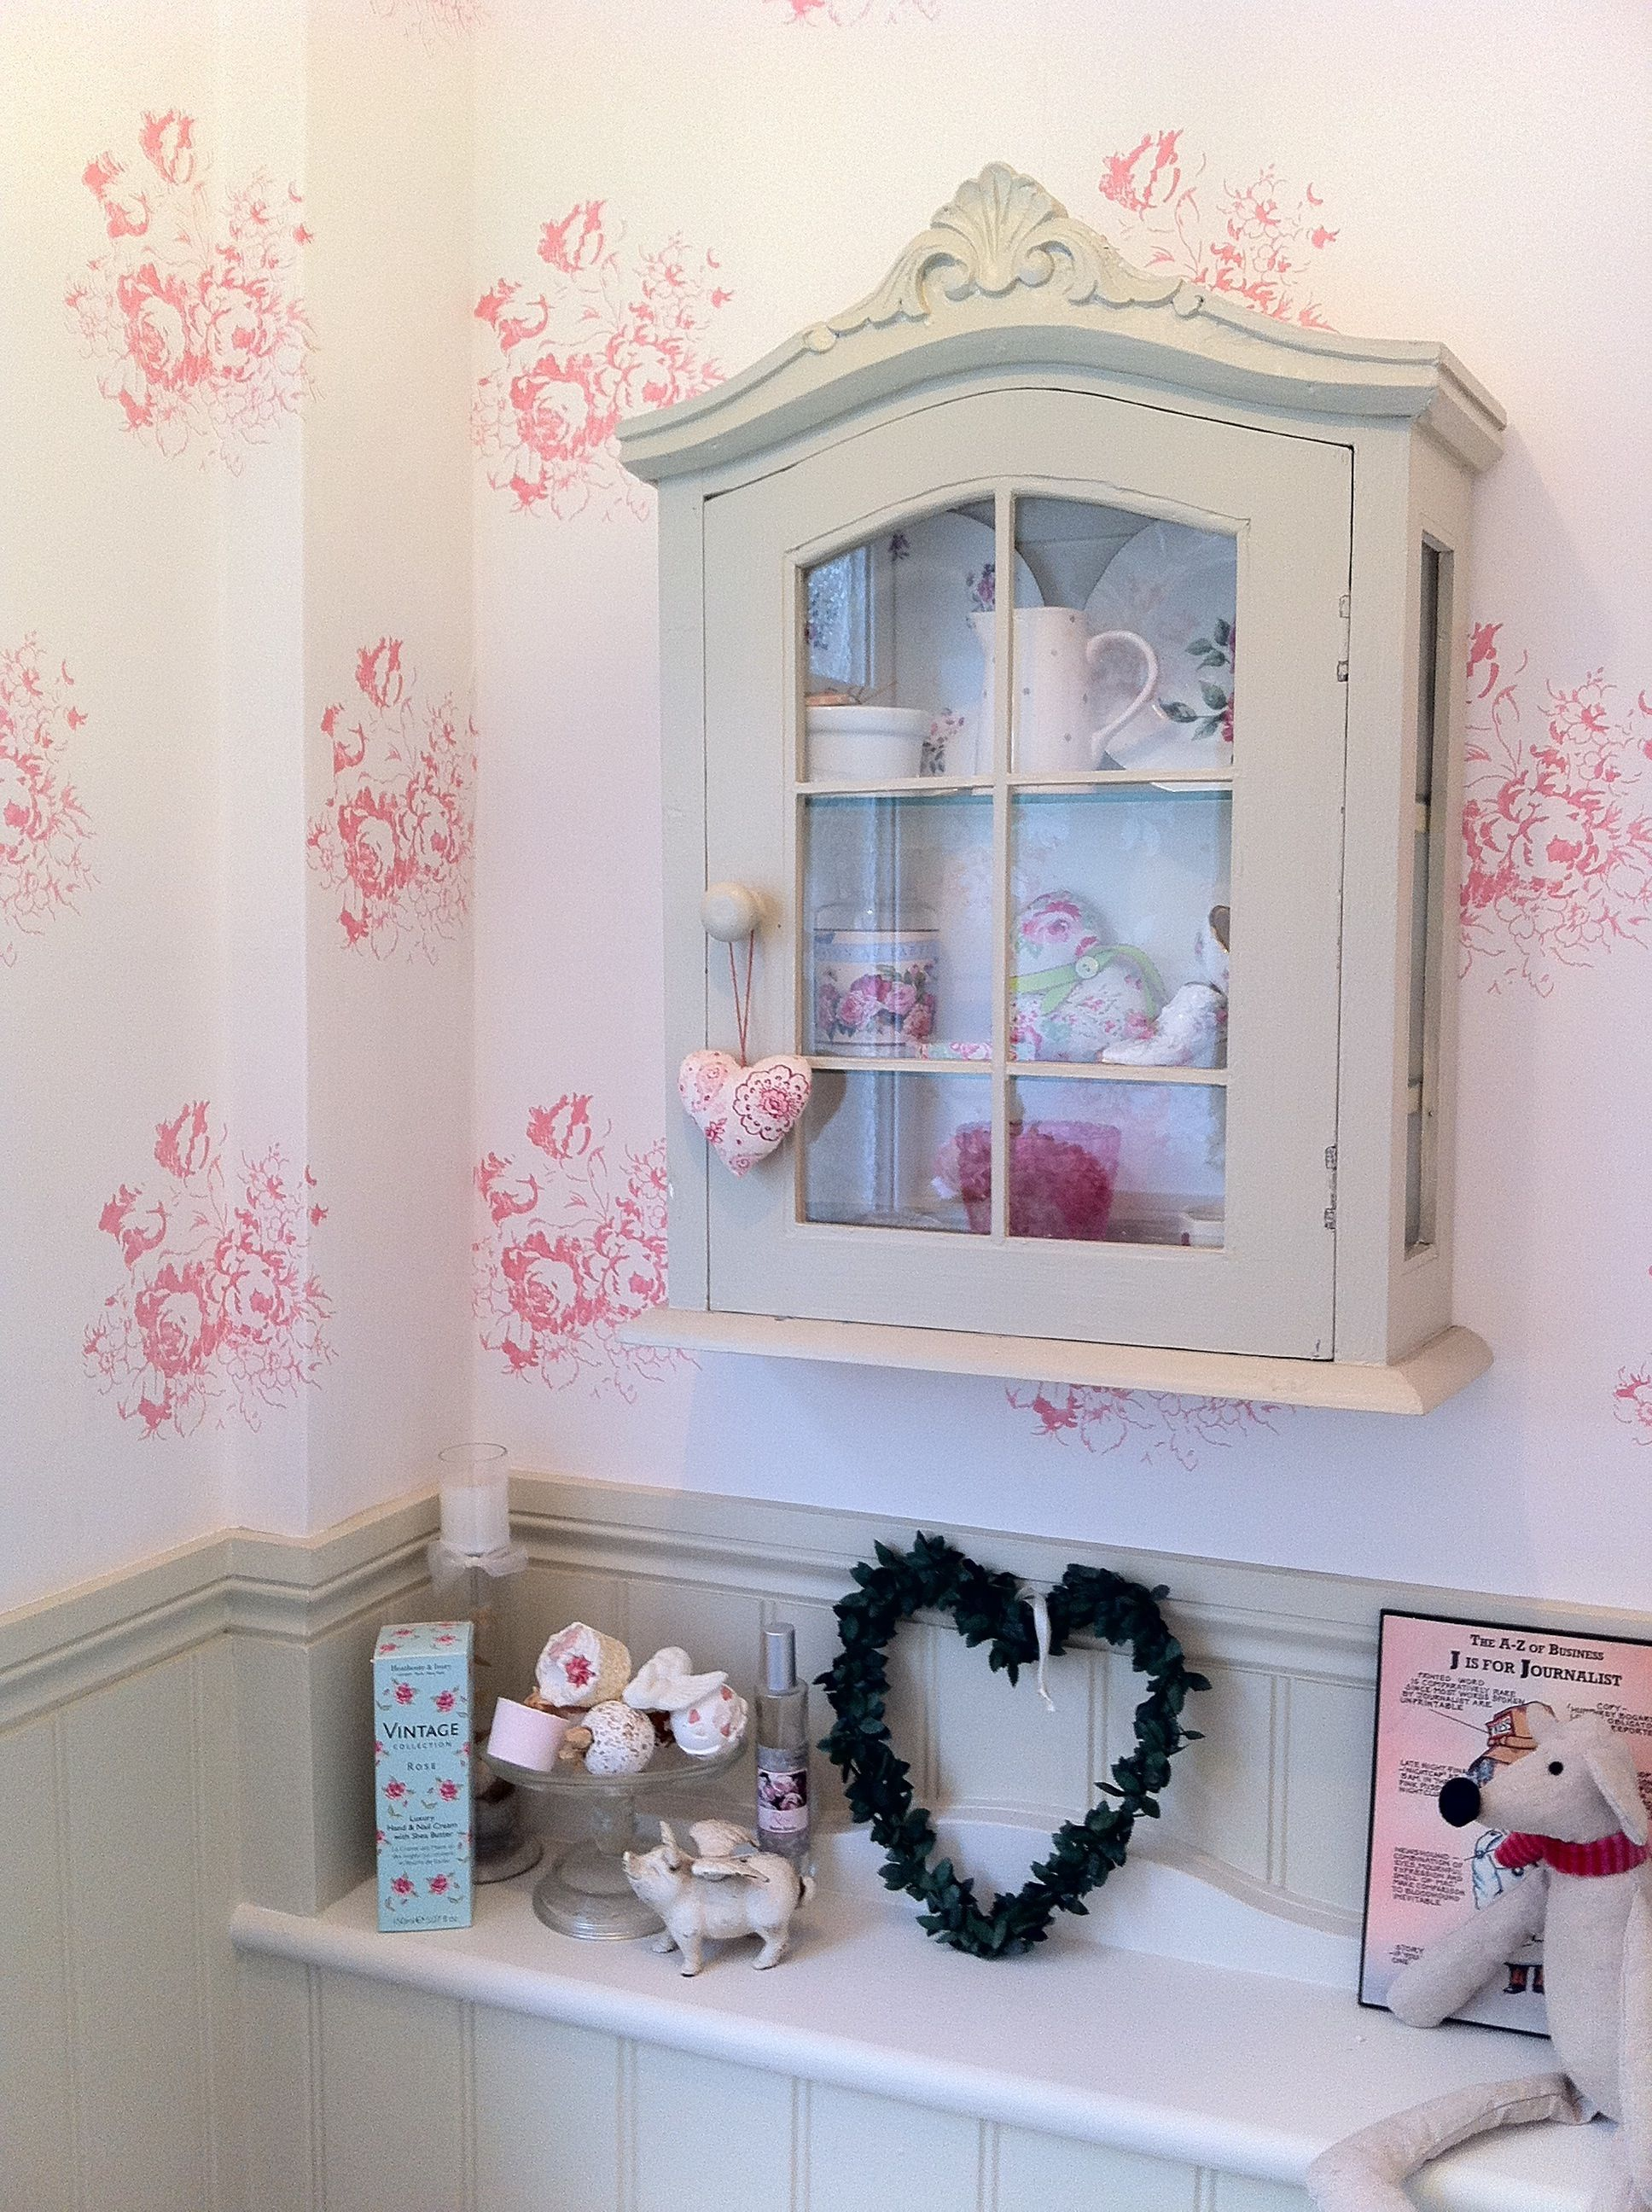 Cabbages And Roses Hatley Wallpaper In A Small Modern Country Cloakroom Style